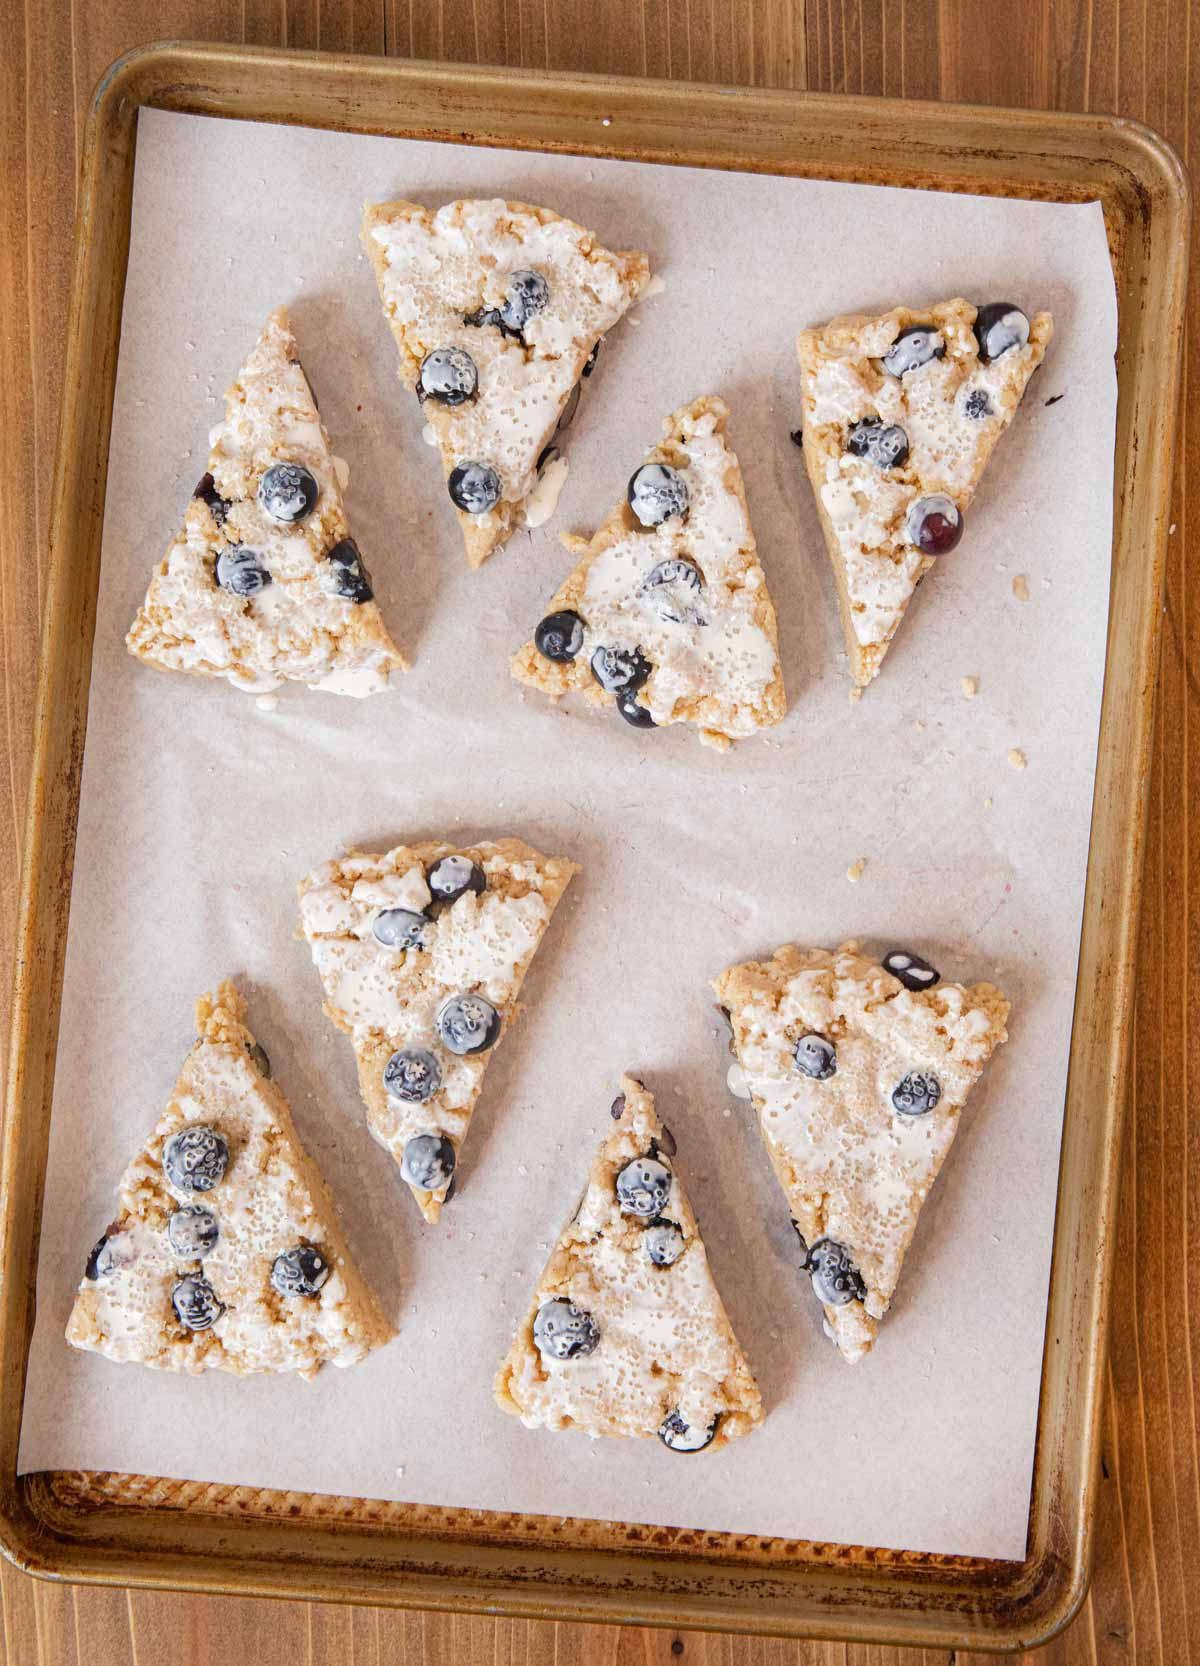 Blueberry Scones unbaked sliced scone wedges on cookie sheet